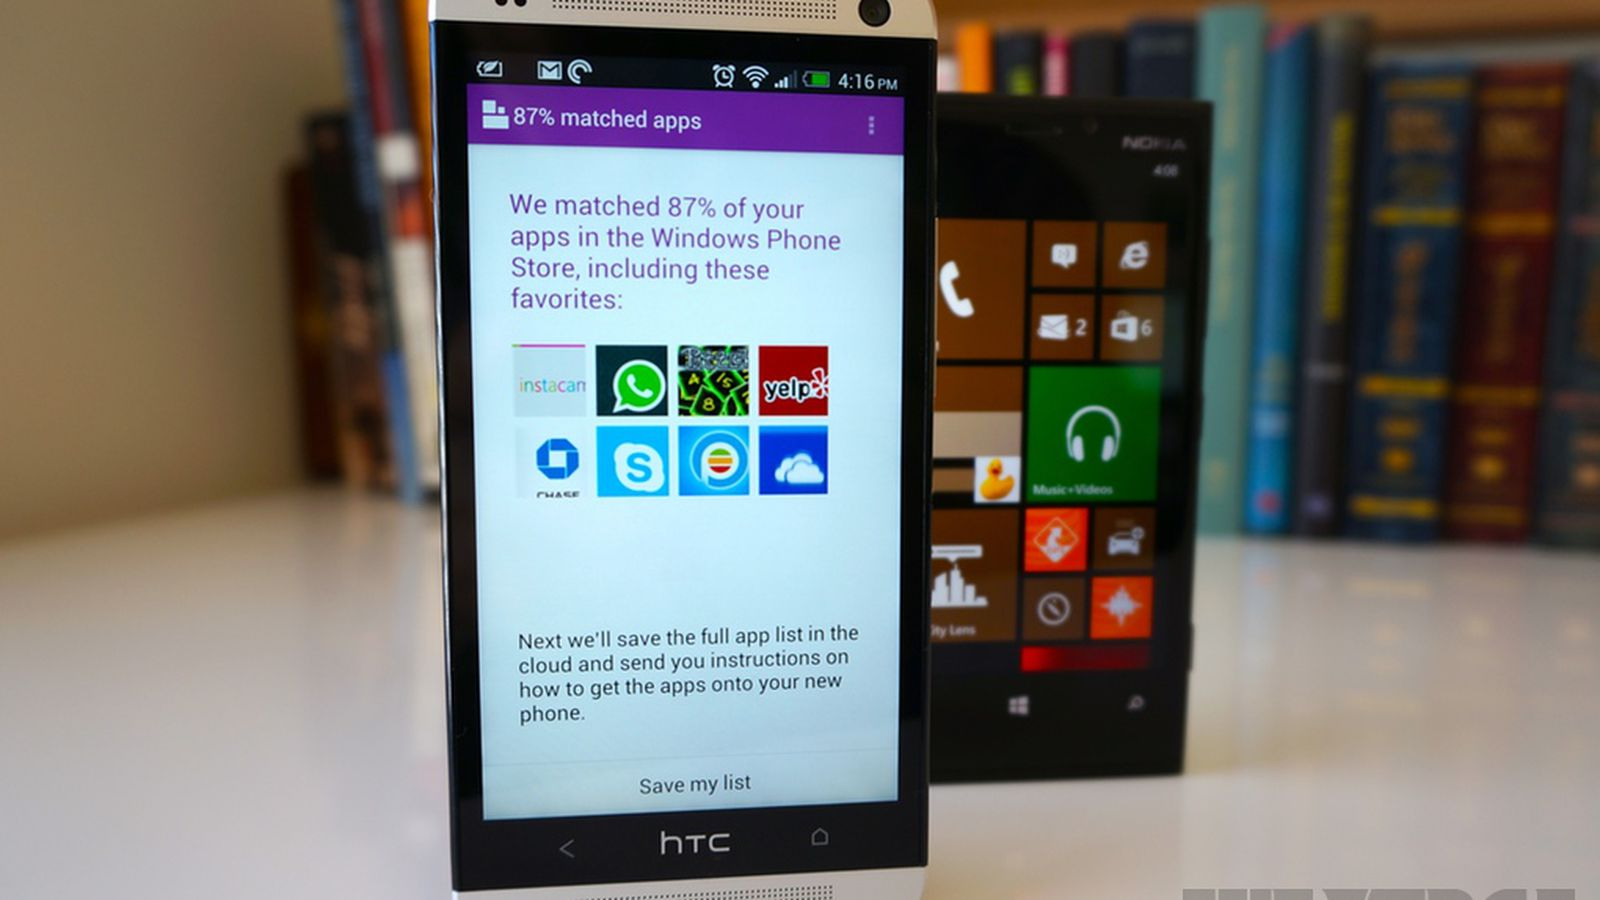 How to switch from Windows Phone to Android Phone